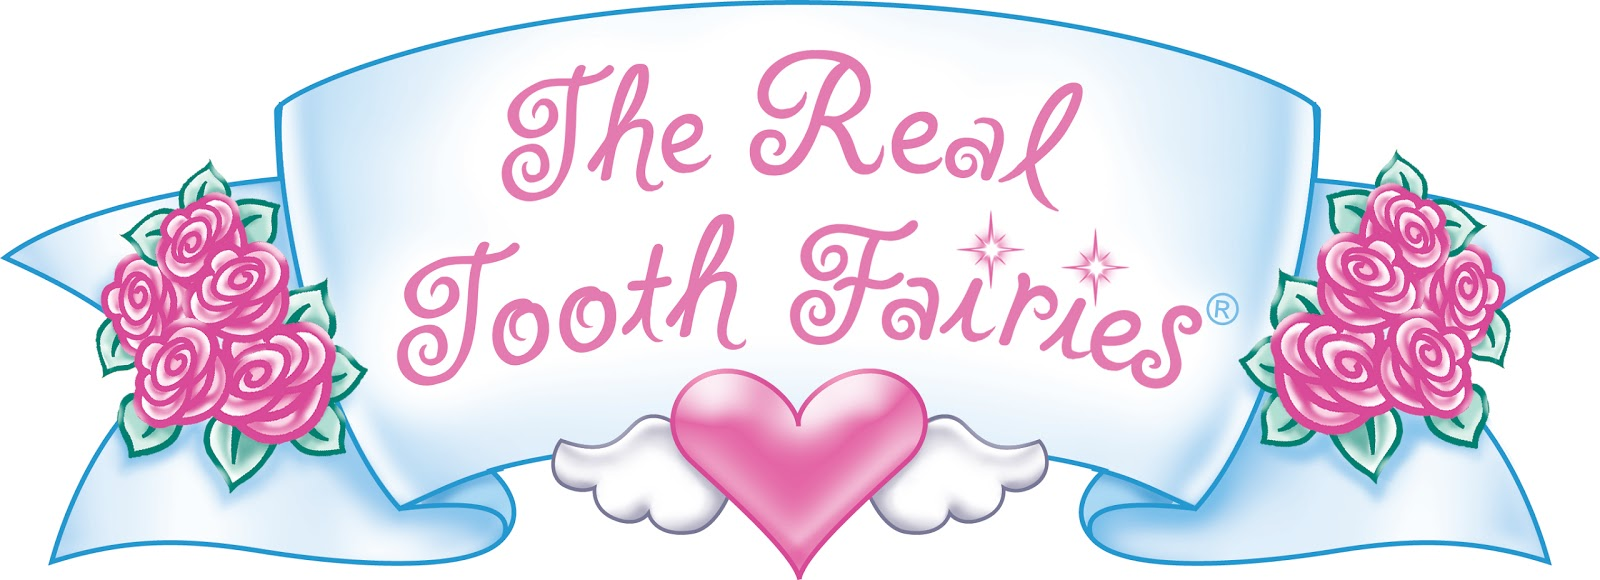 Meet your tooth fairy http andtwinsmake5 blogspot com 2010 10 real